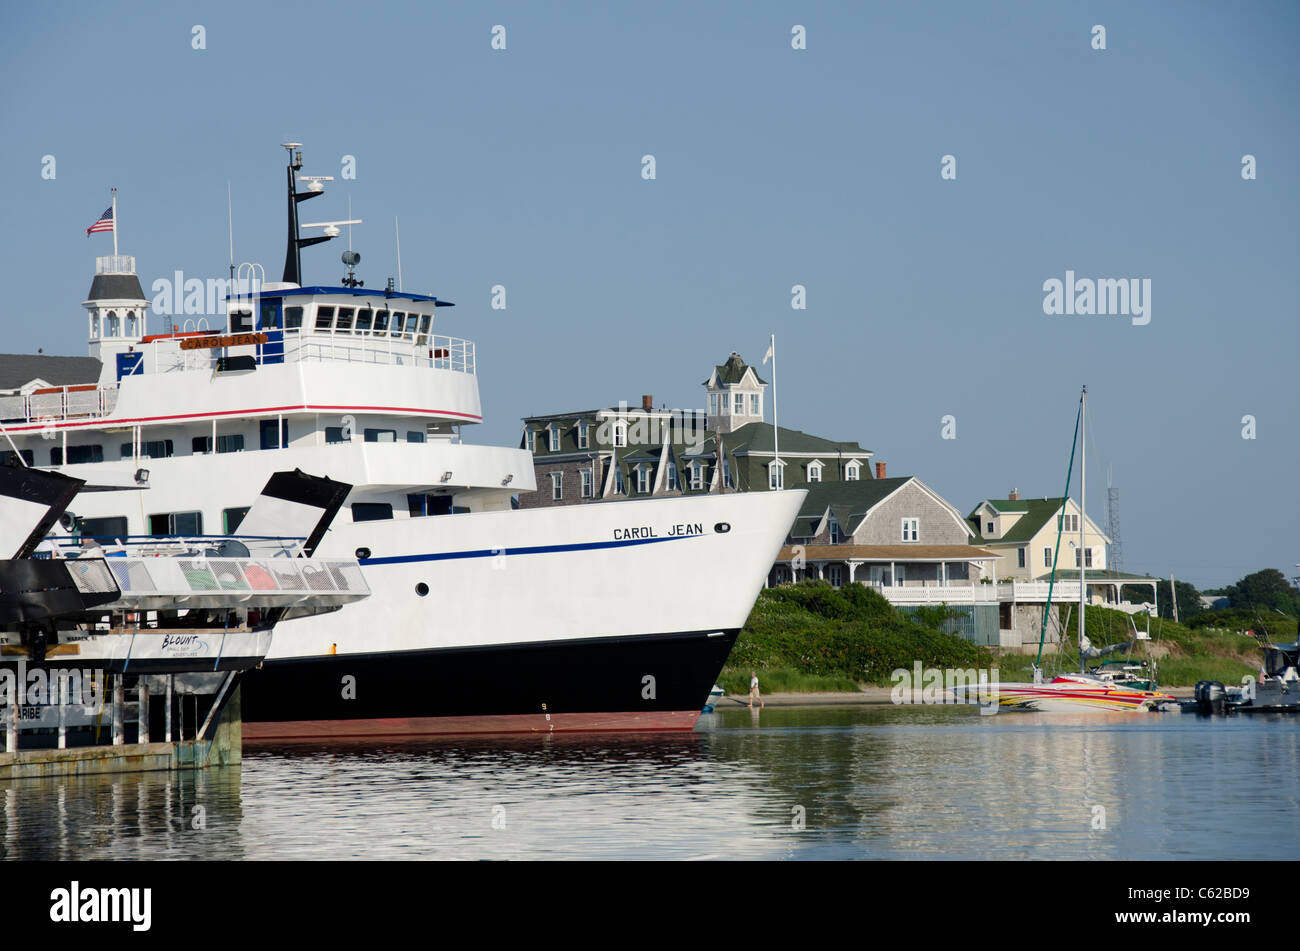 block island ferry stock photos & block island ferry stock images